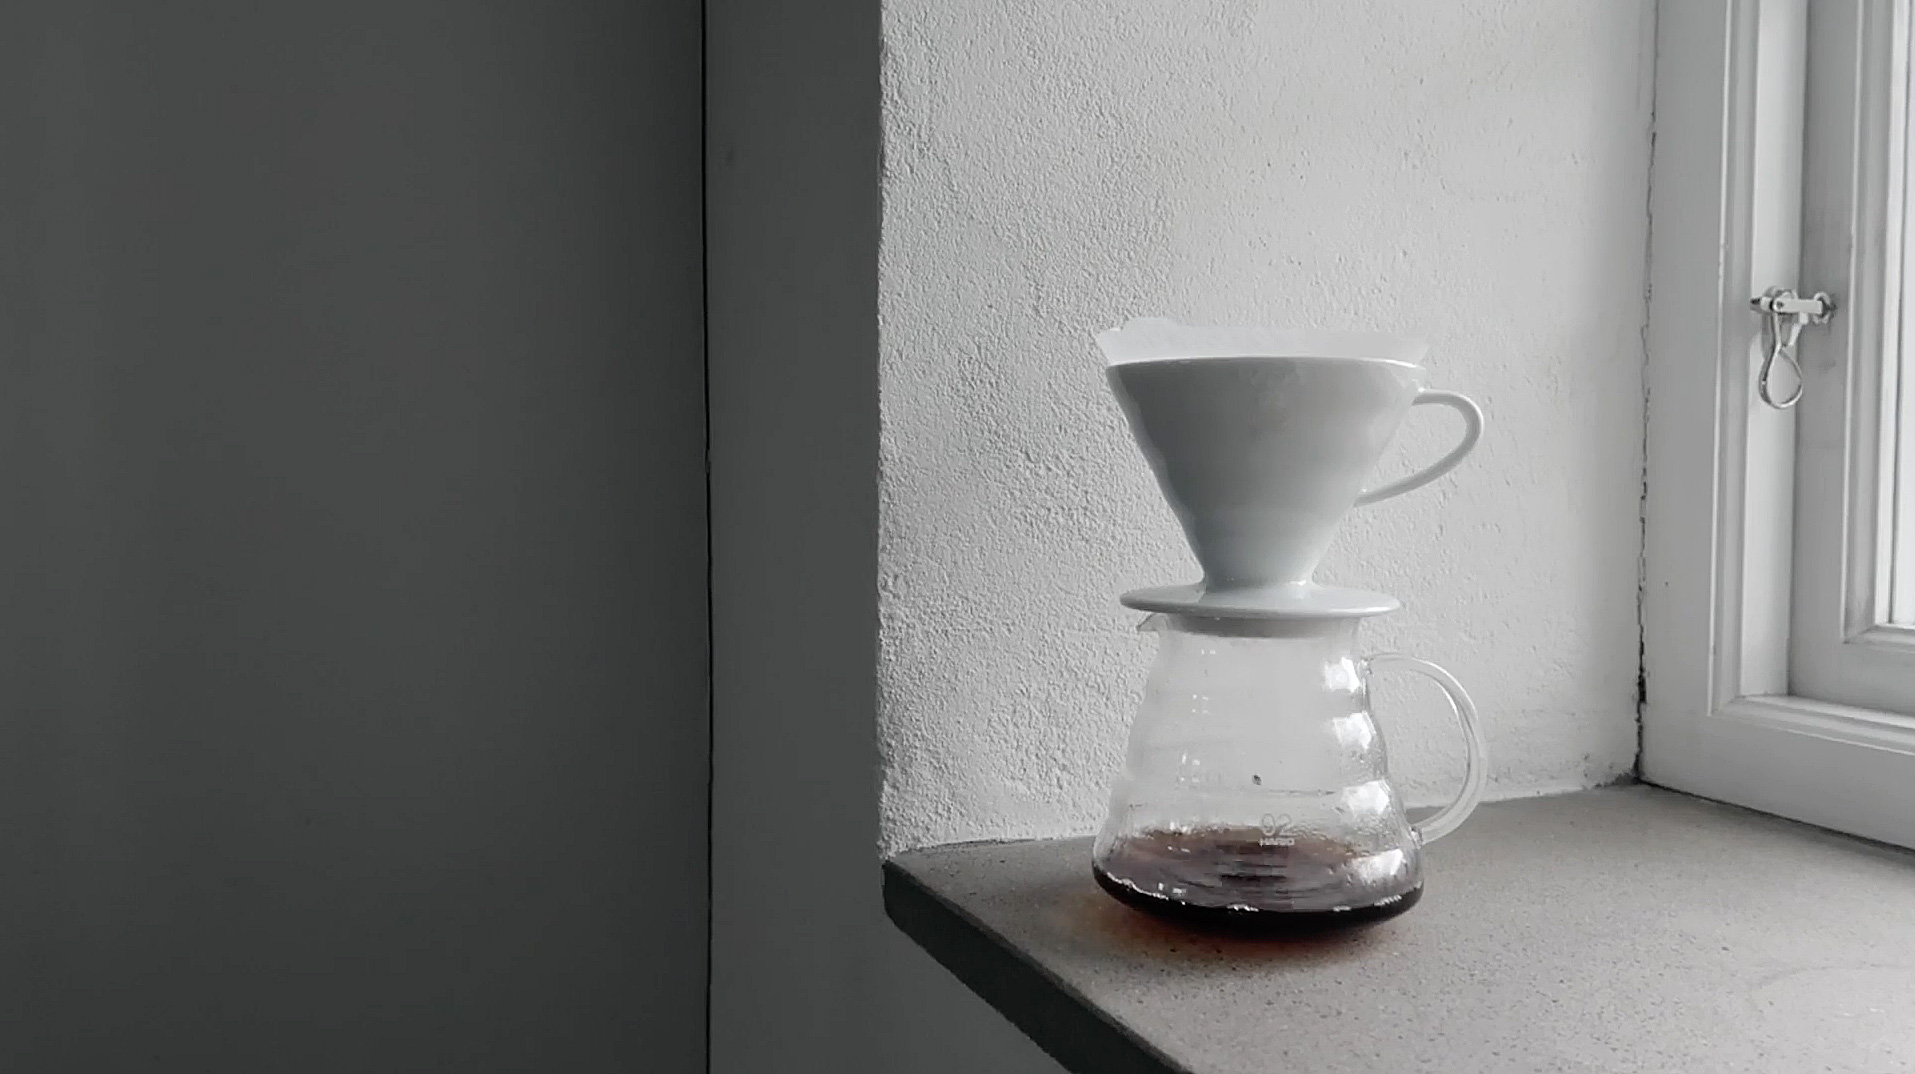 5 Steps to a Great Cup of Coffee